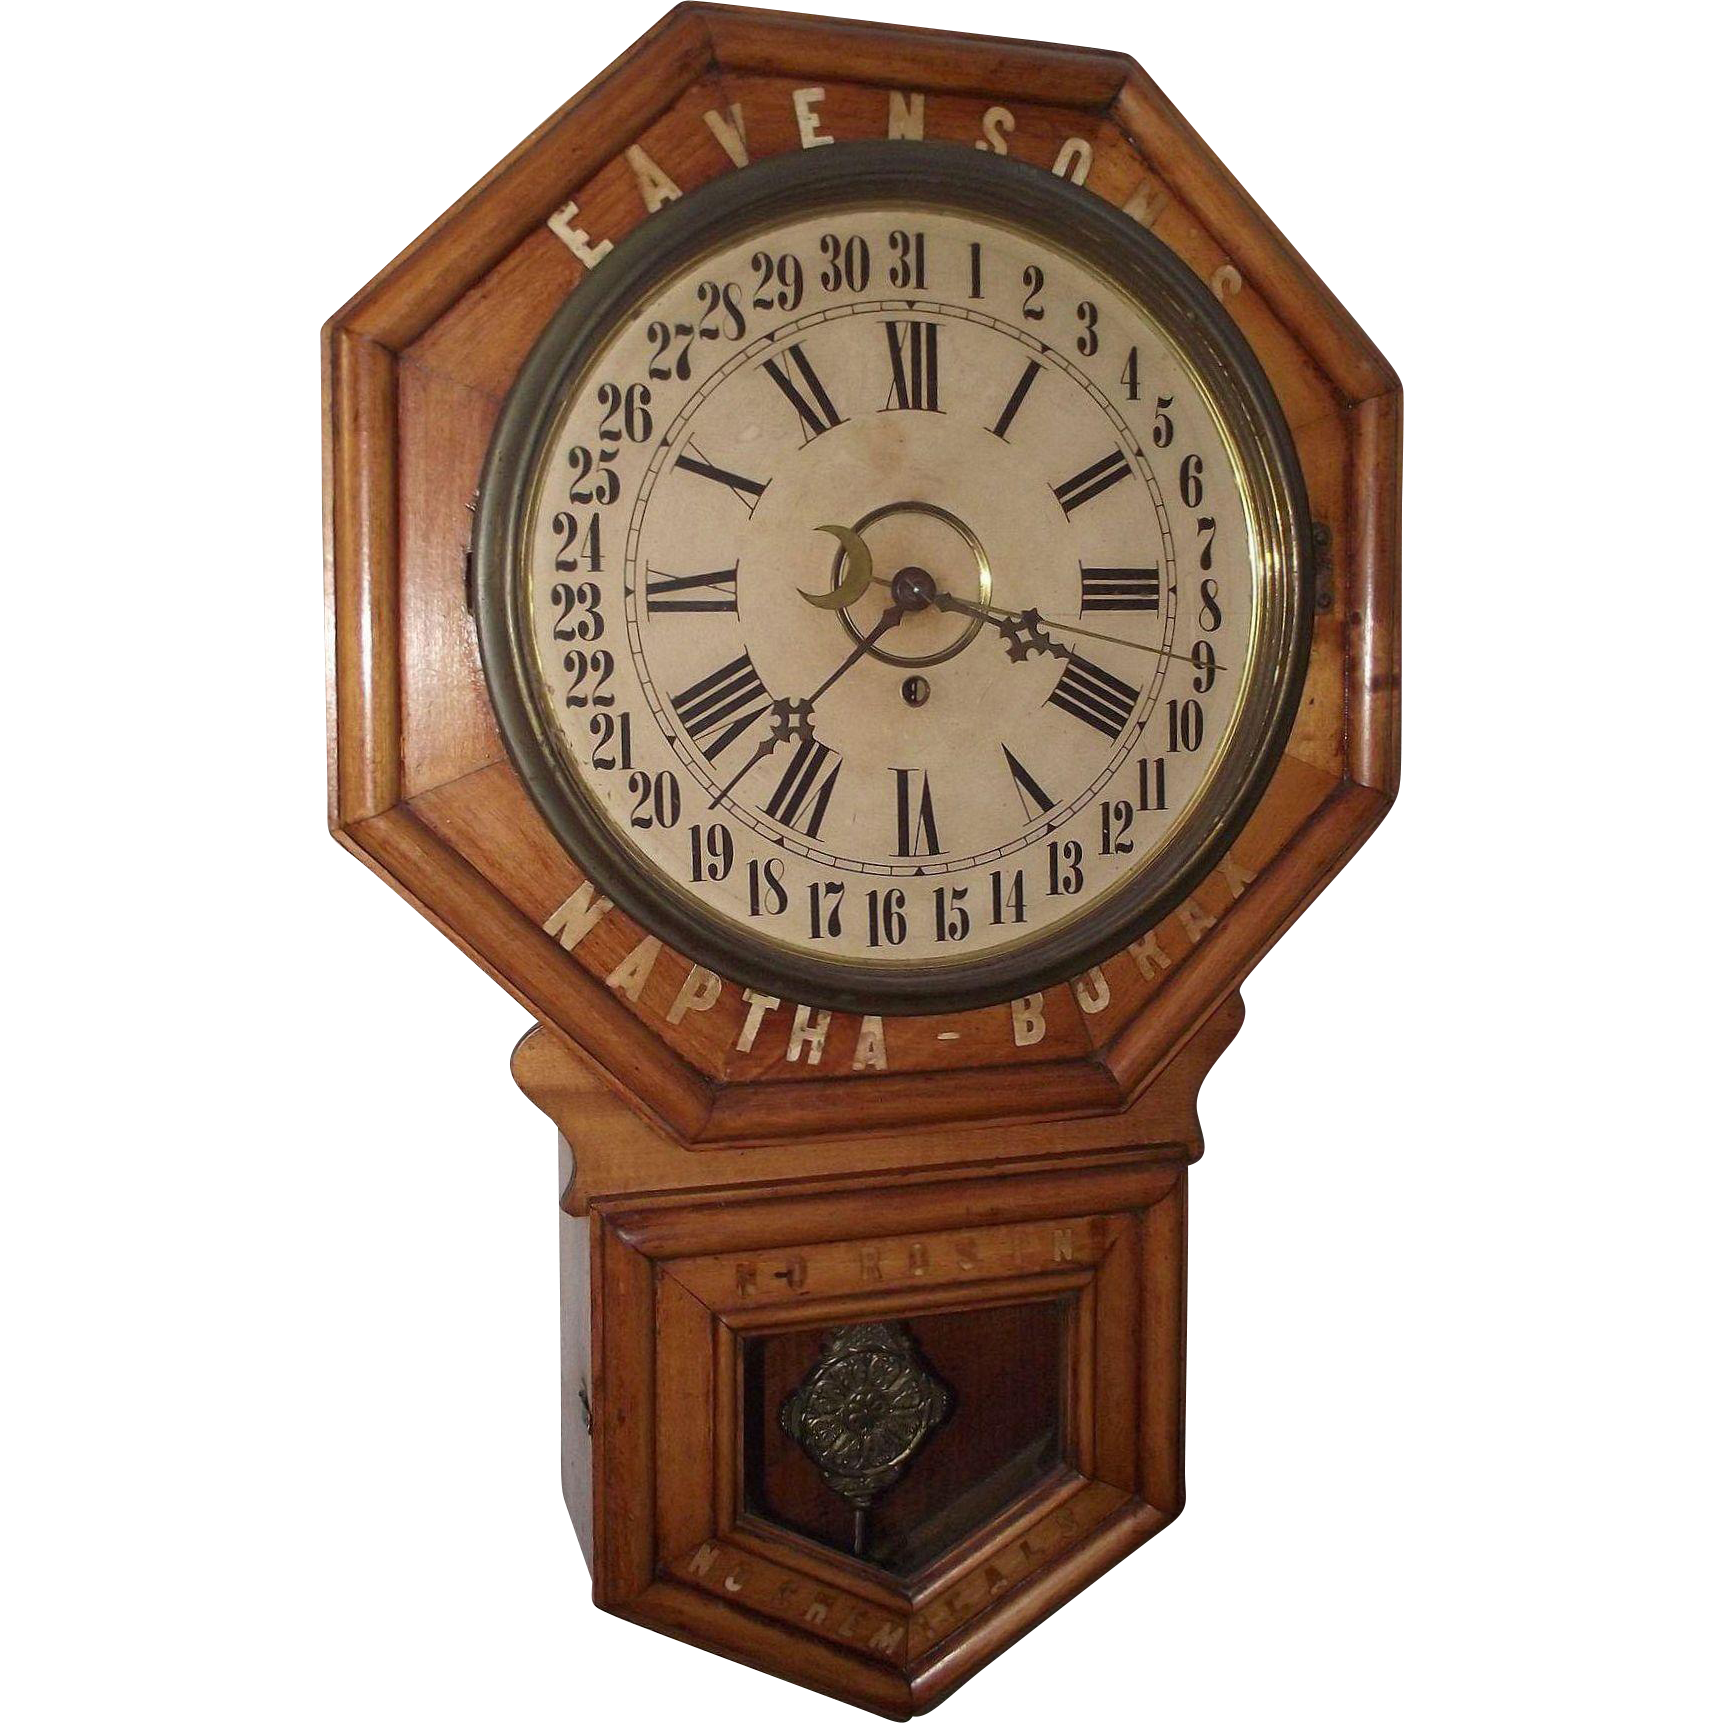 "Original ""Eavenson's * Naptha - Borax"" General Store Regulator Clock Advertising ""No Rosins * No Chemicals"" Circa 1915 !!!"